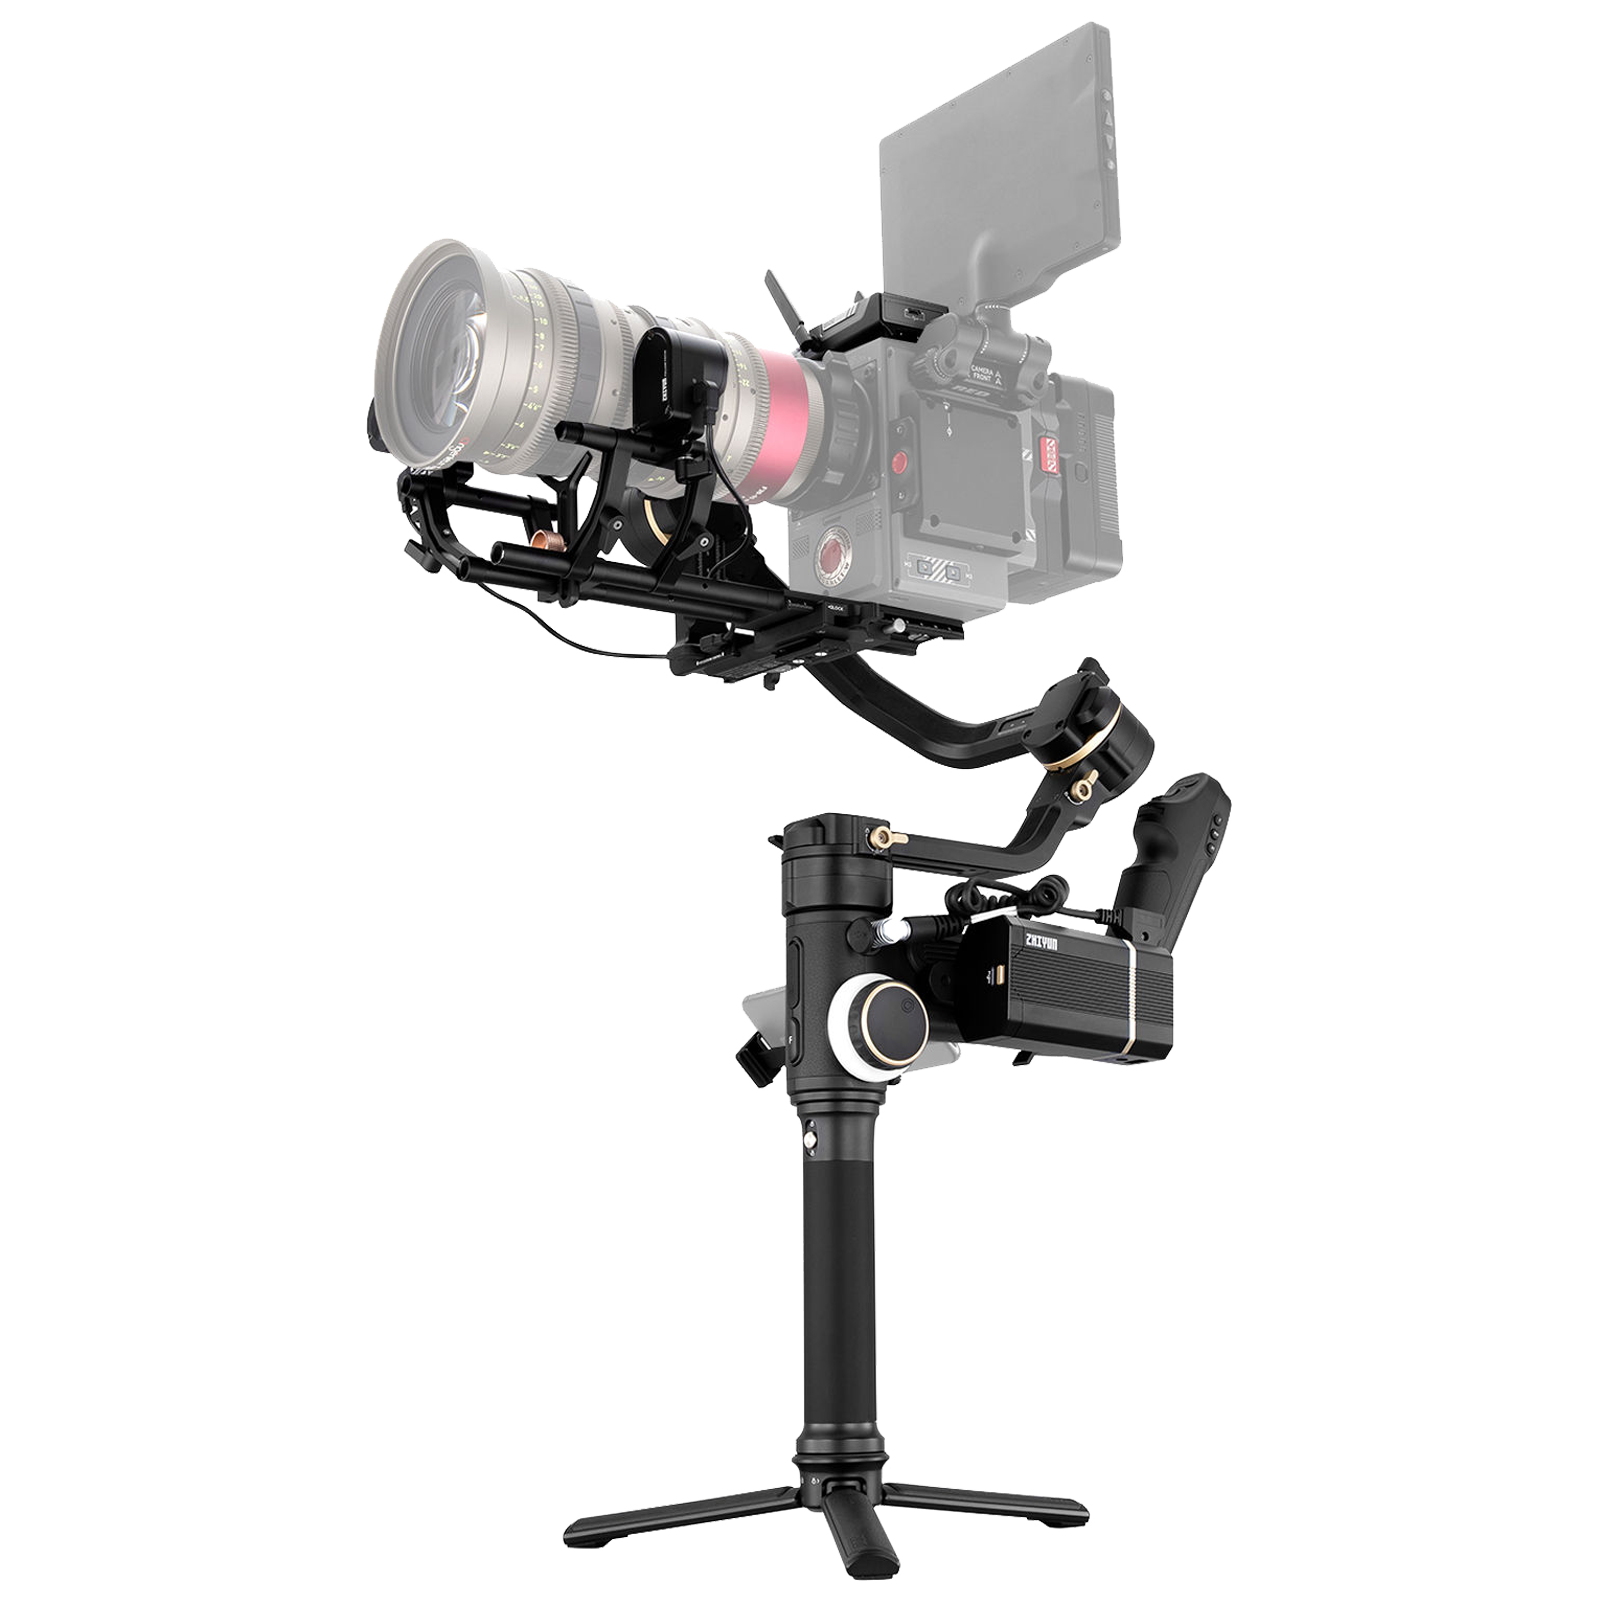 Zhiyun Crane 3S Pro Gimbal For DSLR Camera and Camcorder (Viatouch 2.0 Motion Control System, ZH.00000010.02, Black)_1